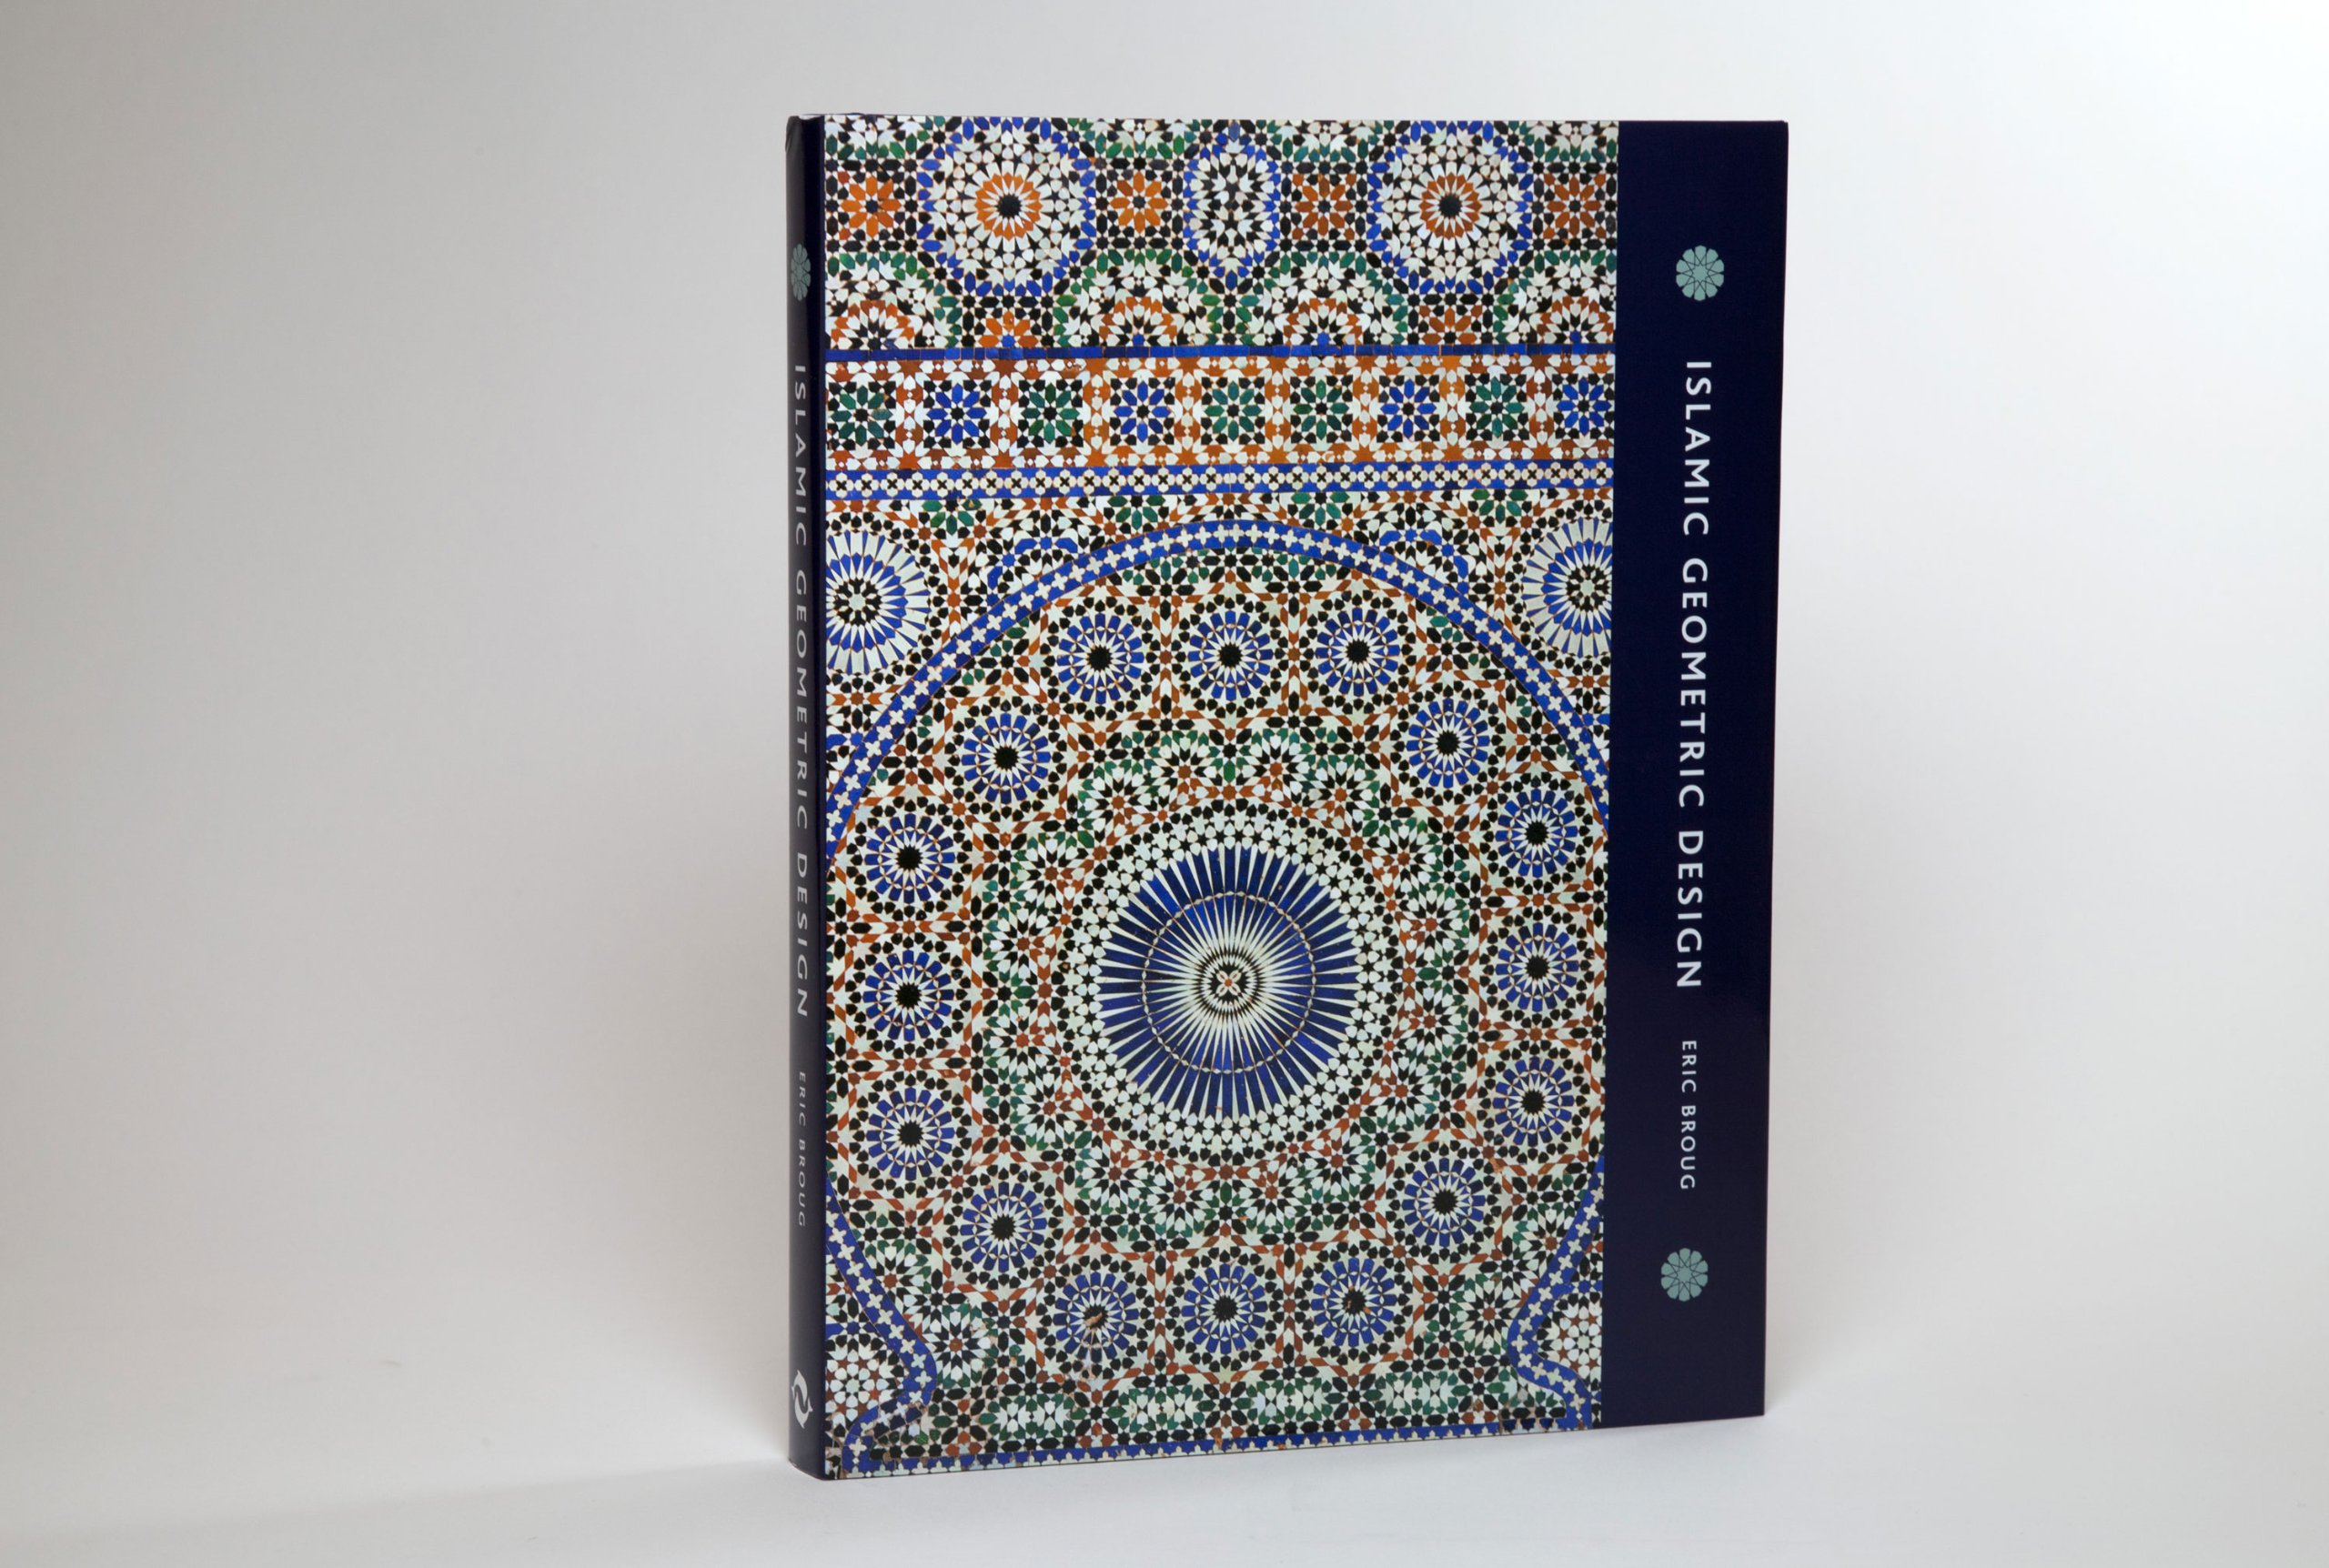 islamic geometric design amazon co uk eric broug 9780500516959 books